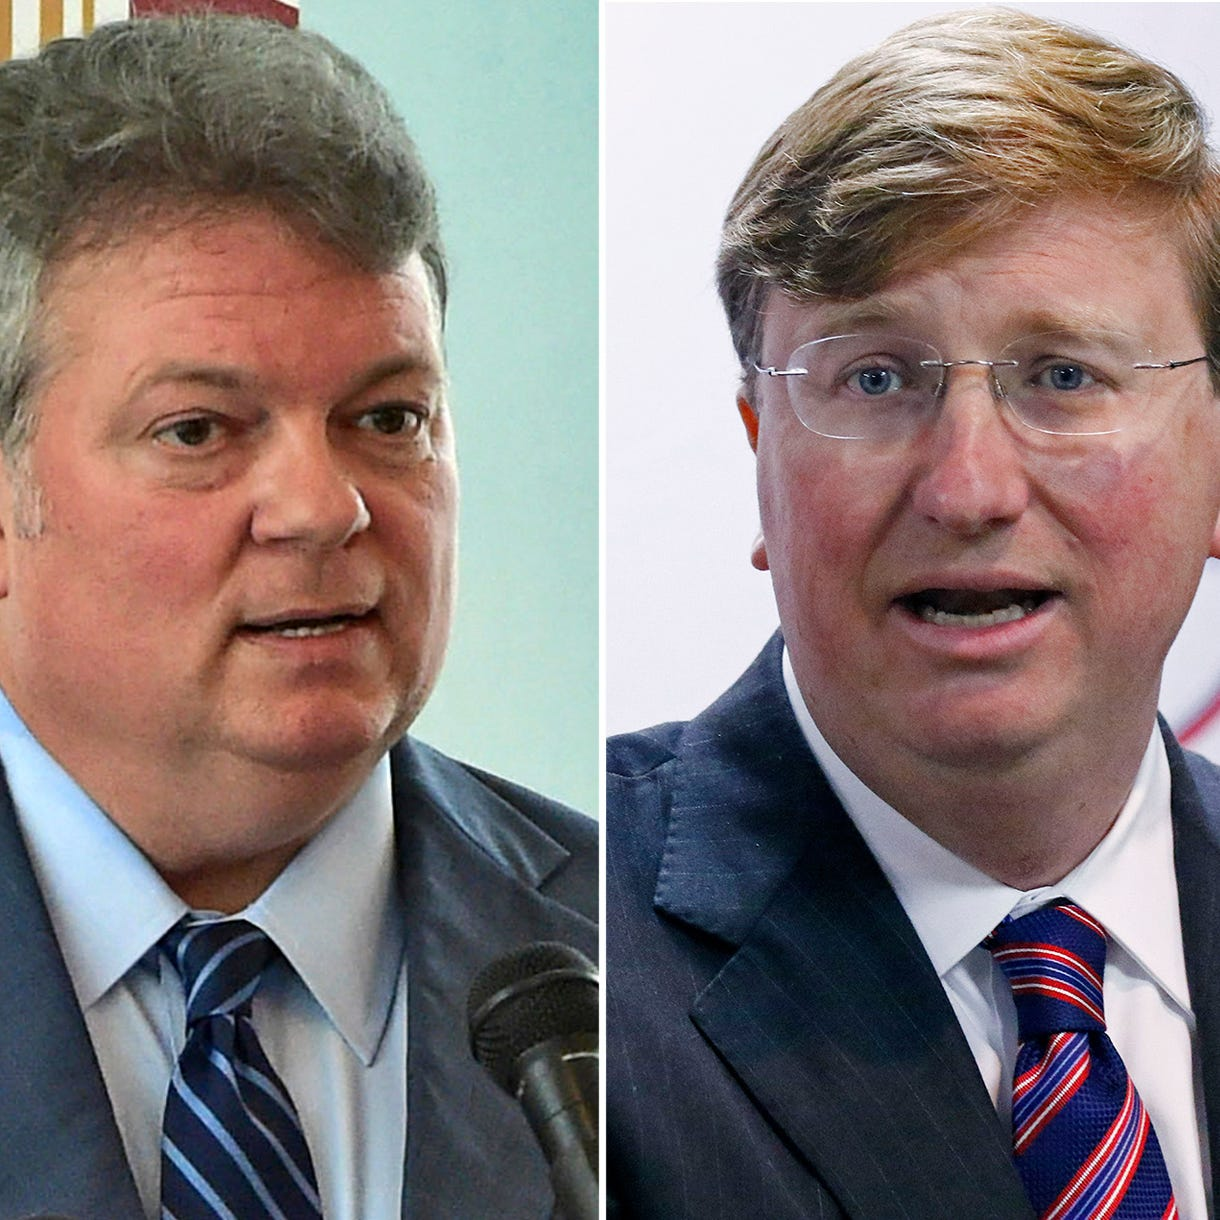 Jim Hood poll shows he's up slightly on Tate Reeves in governor's race